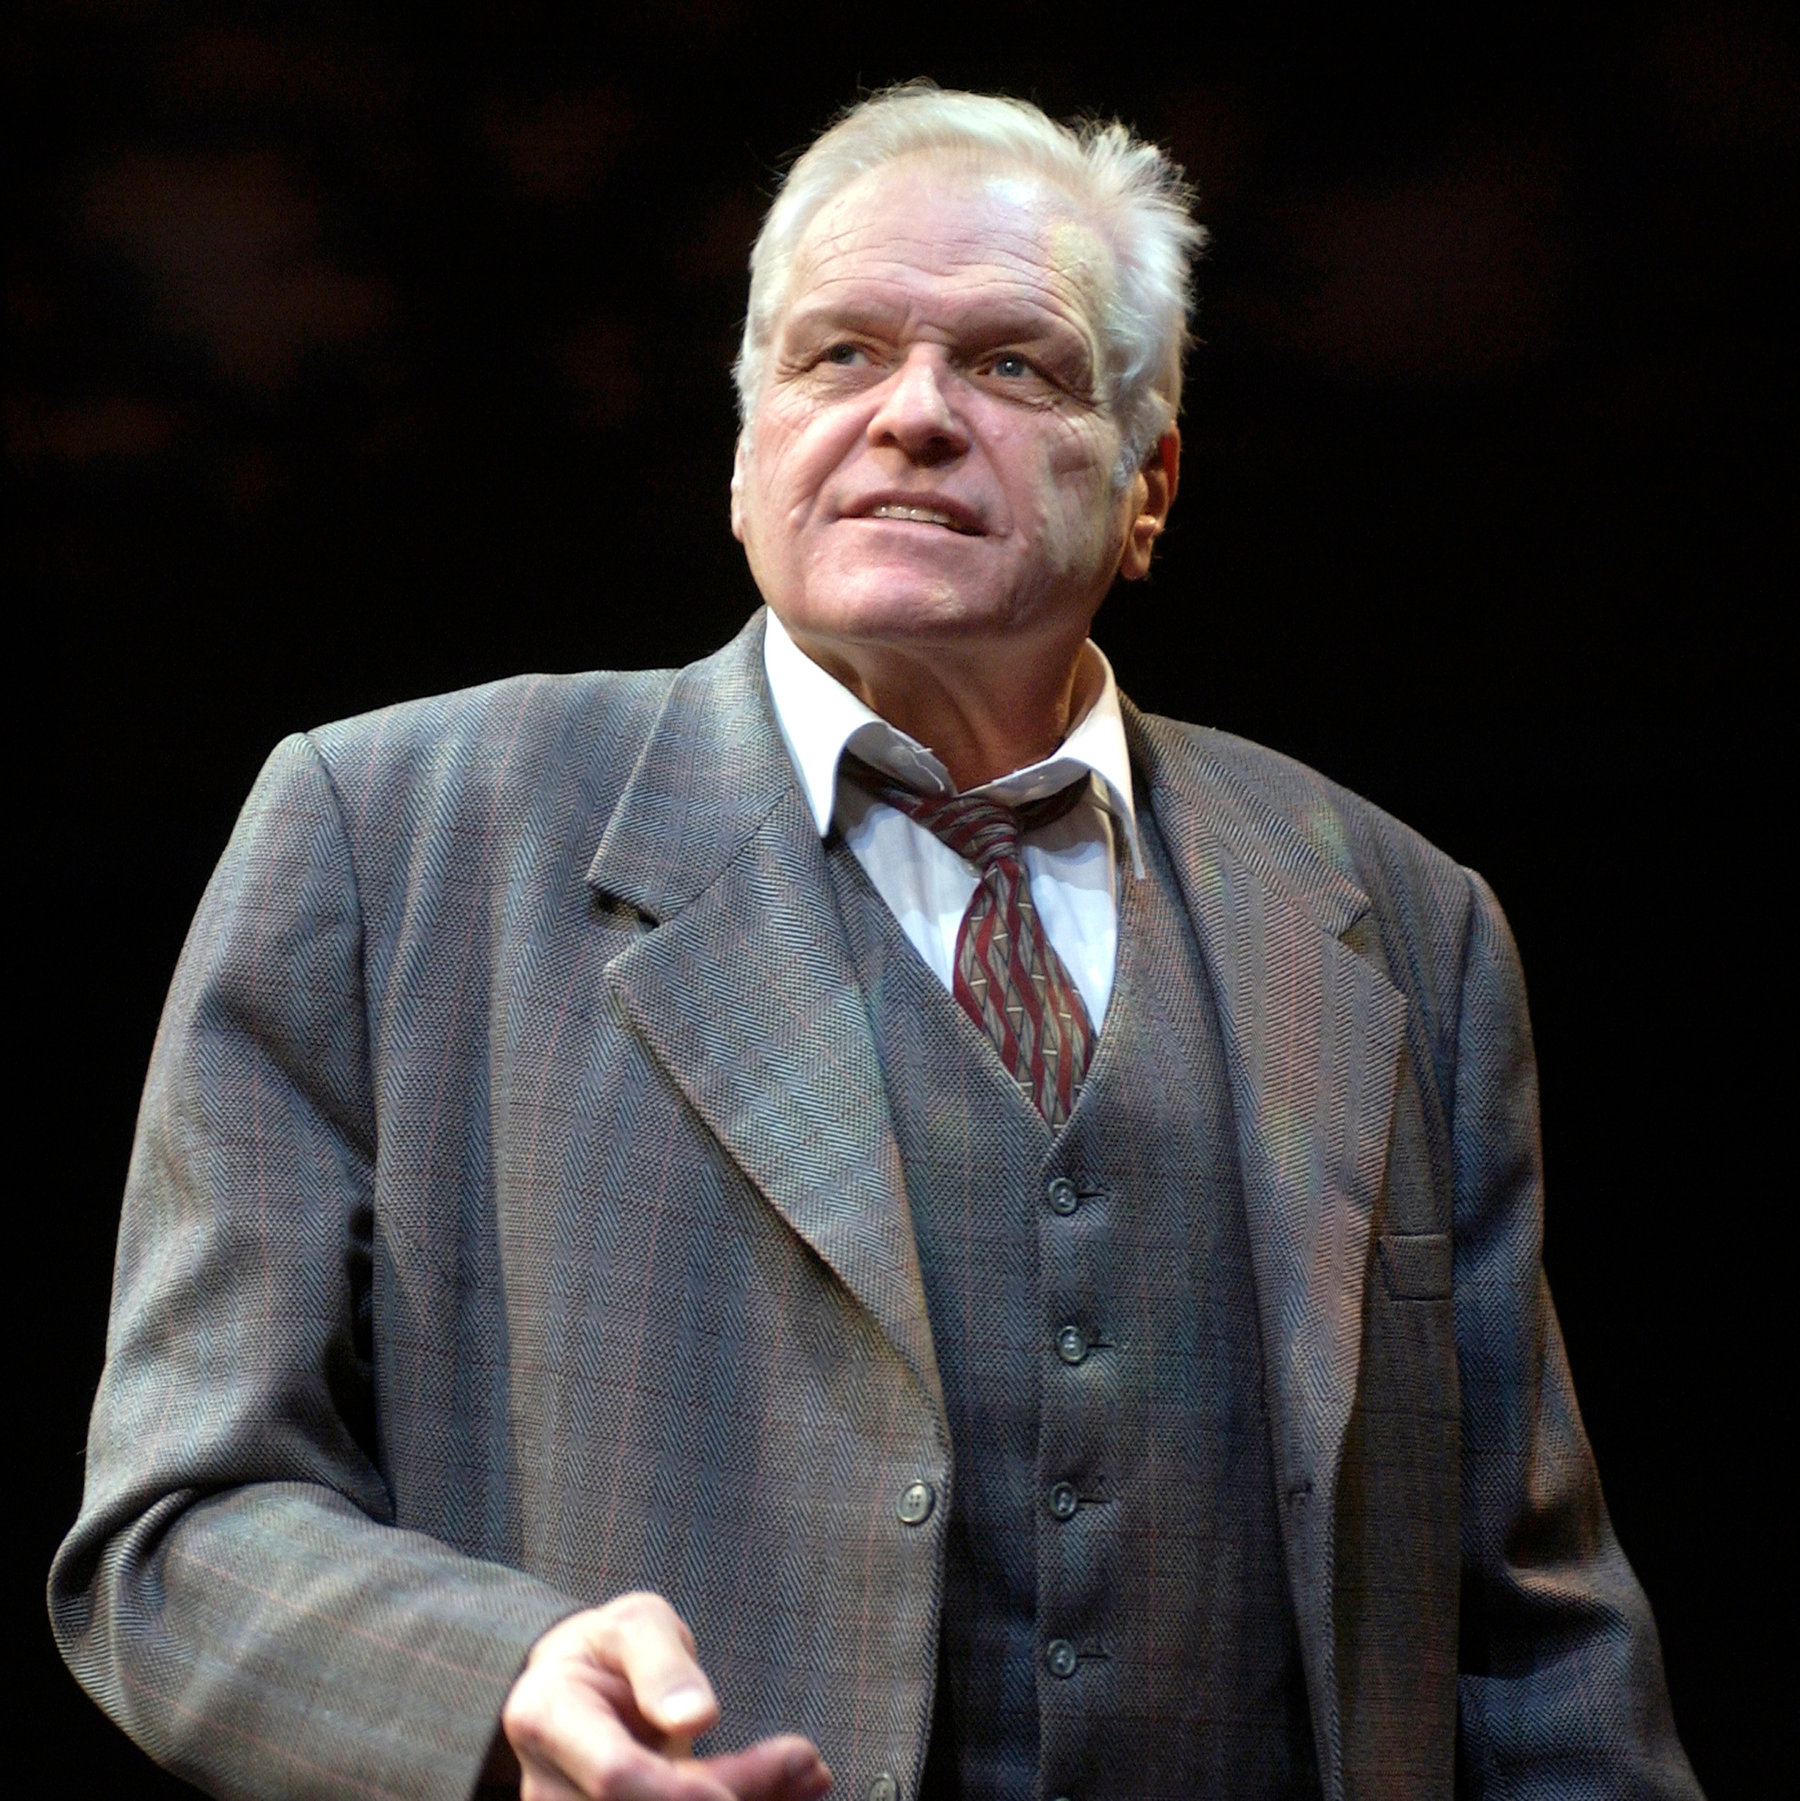 Brian Dennehy Wallpapers Pack